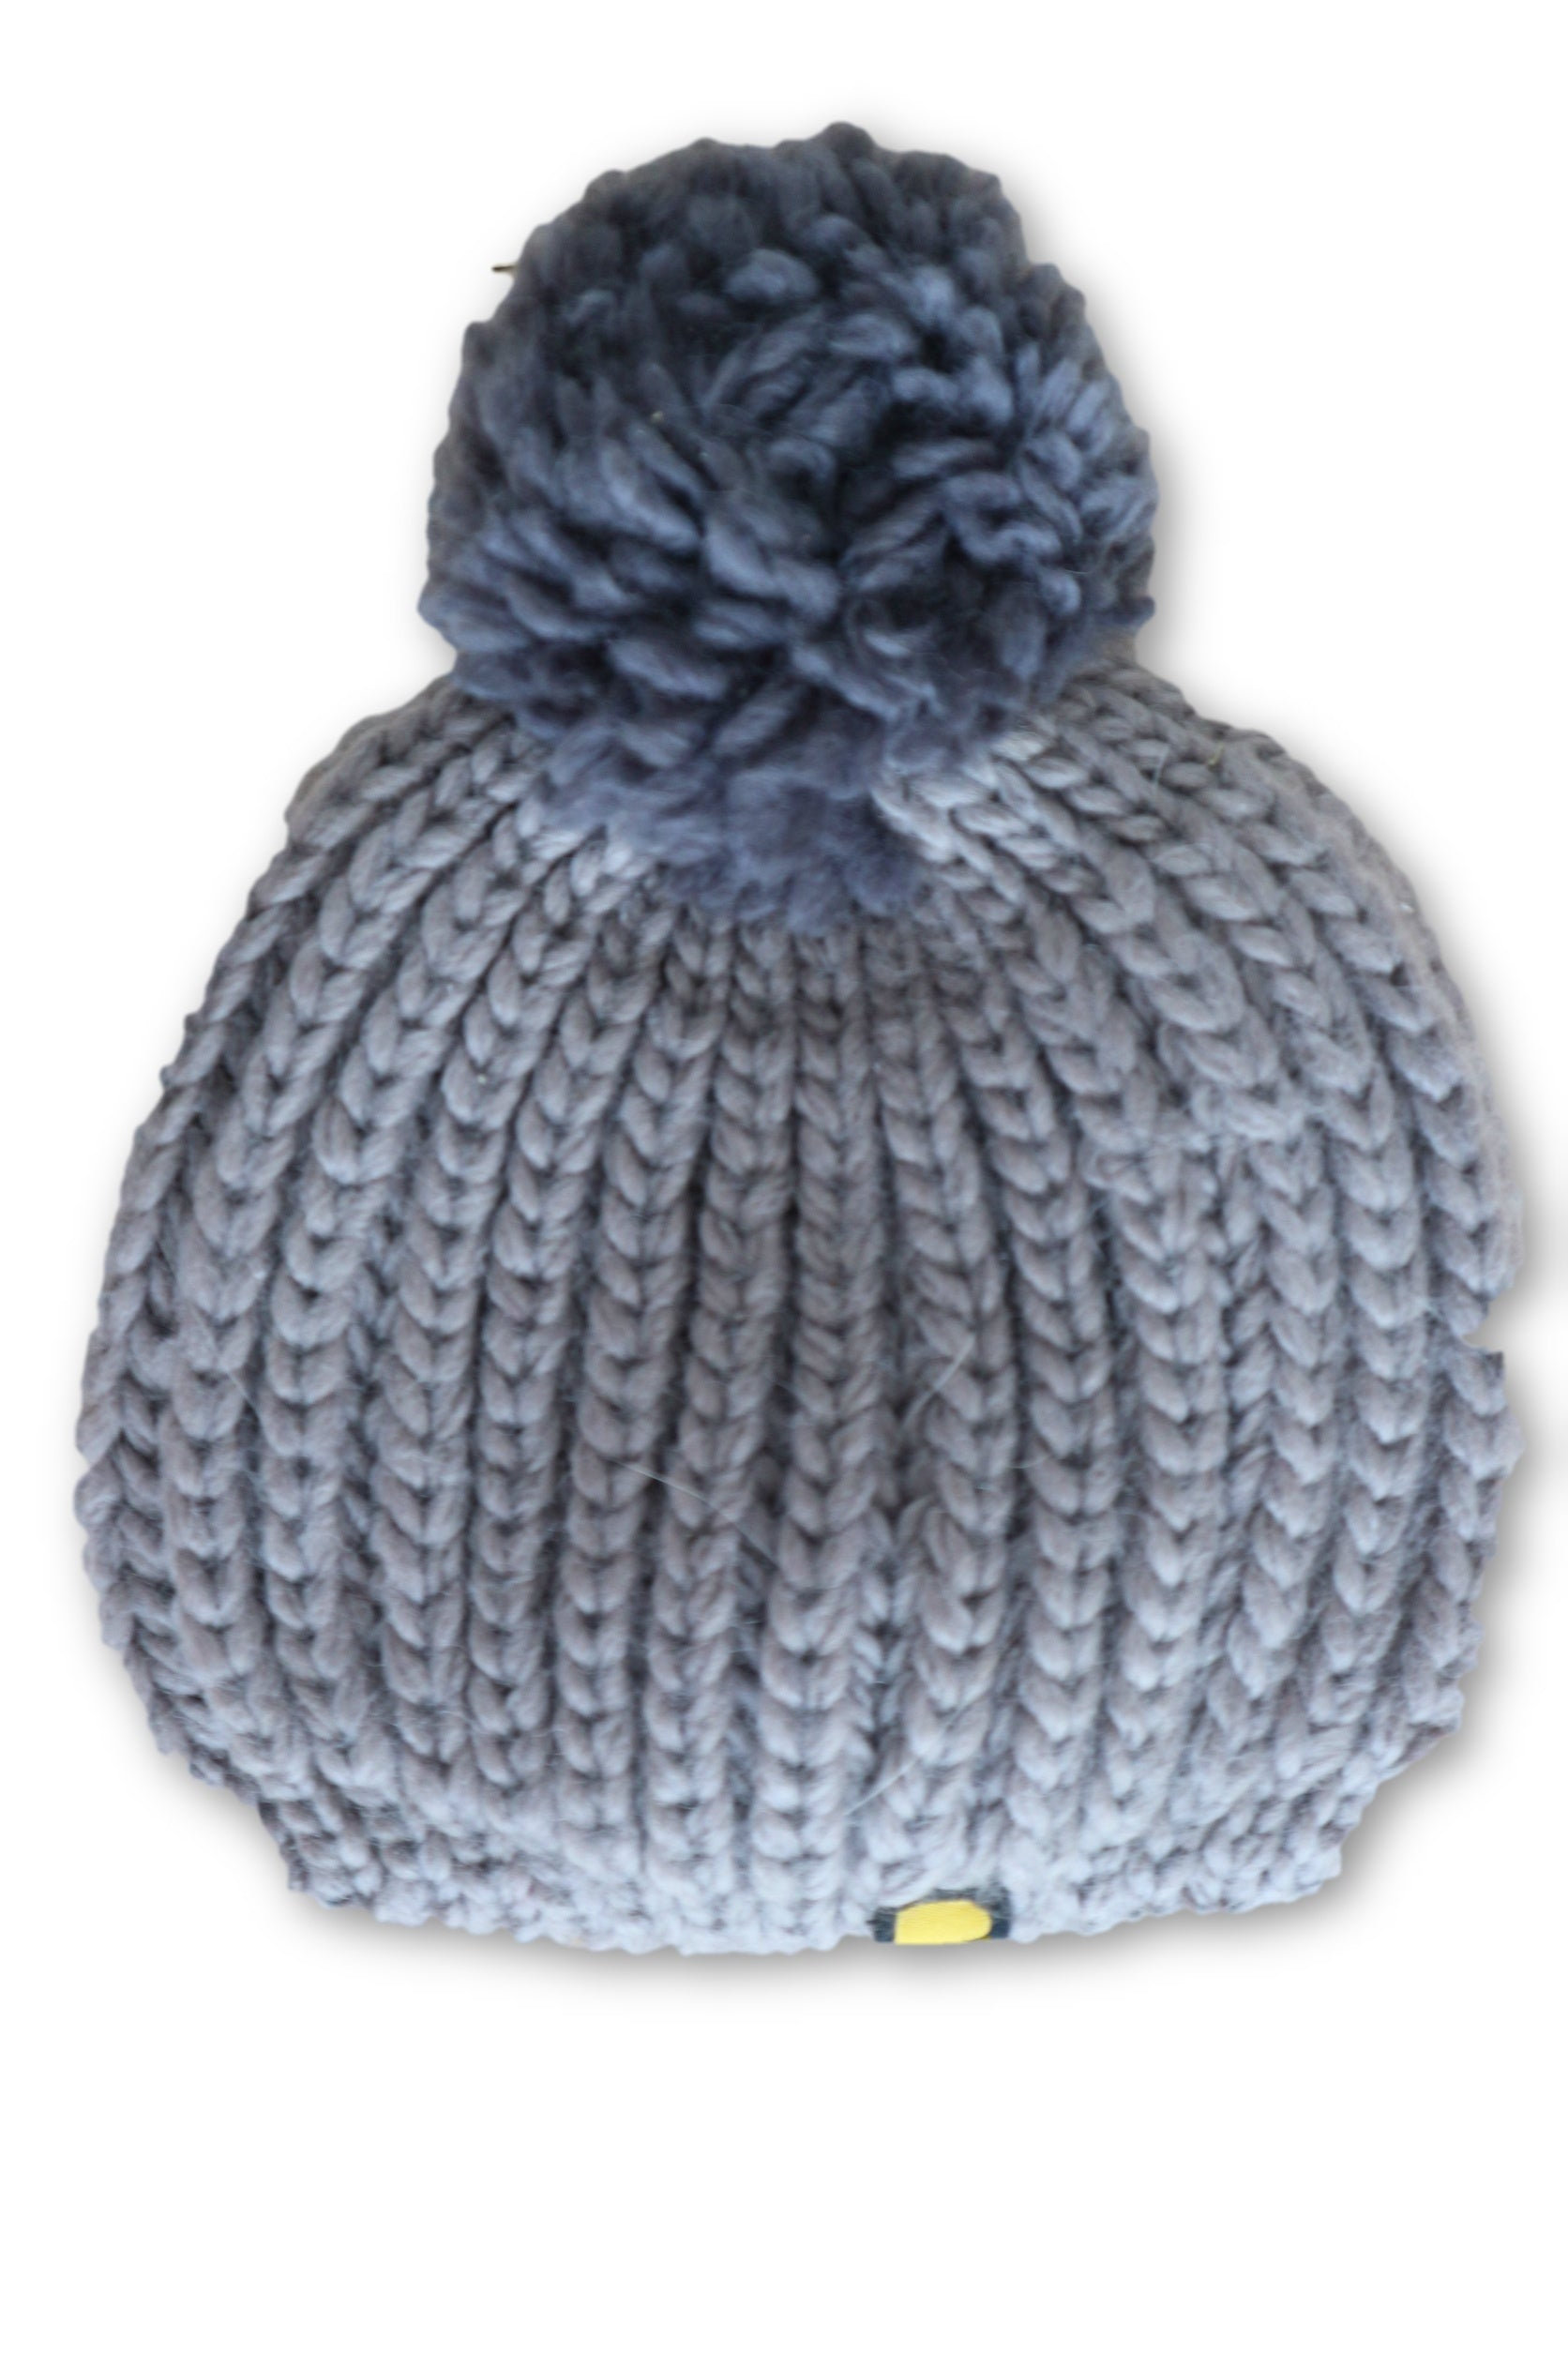 Rock Your Kid Beanie - Use-Ta! Preloved Children's Wear Online